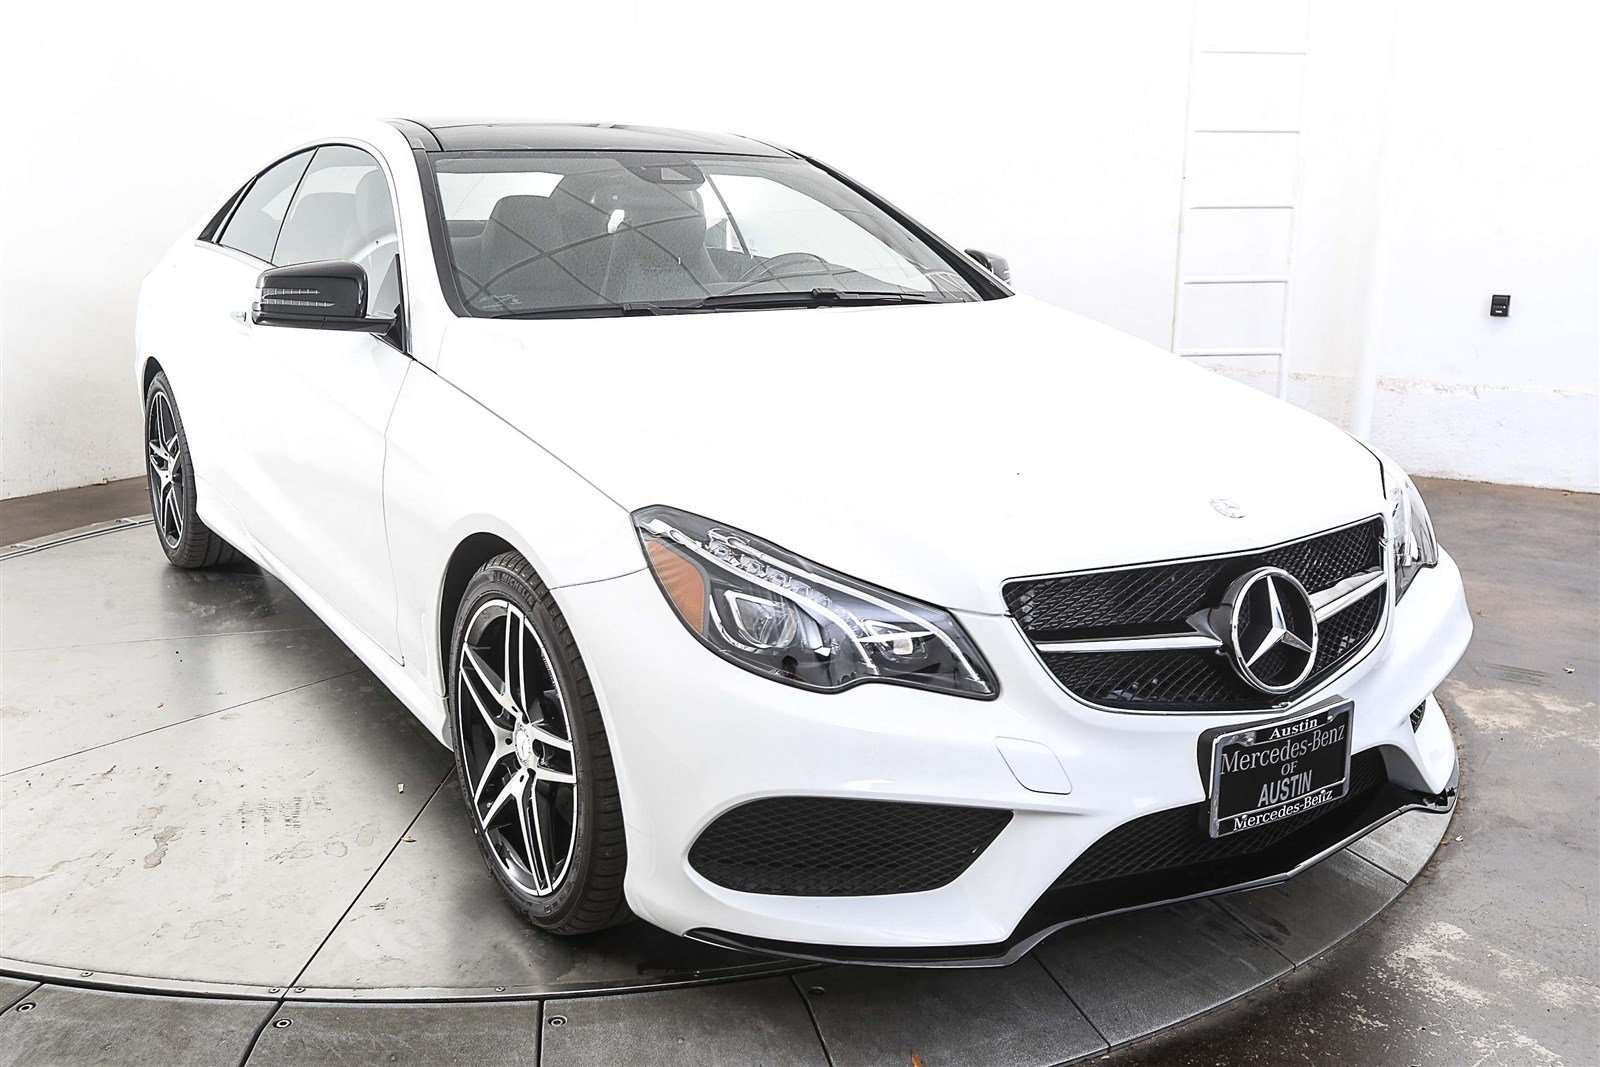 Pre owned 2017 mercedes benz e class e 400 coupe in austin for Pre owned e class mercedes benz